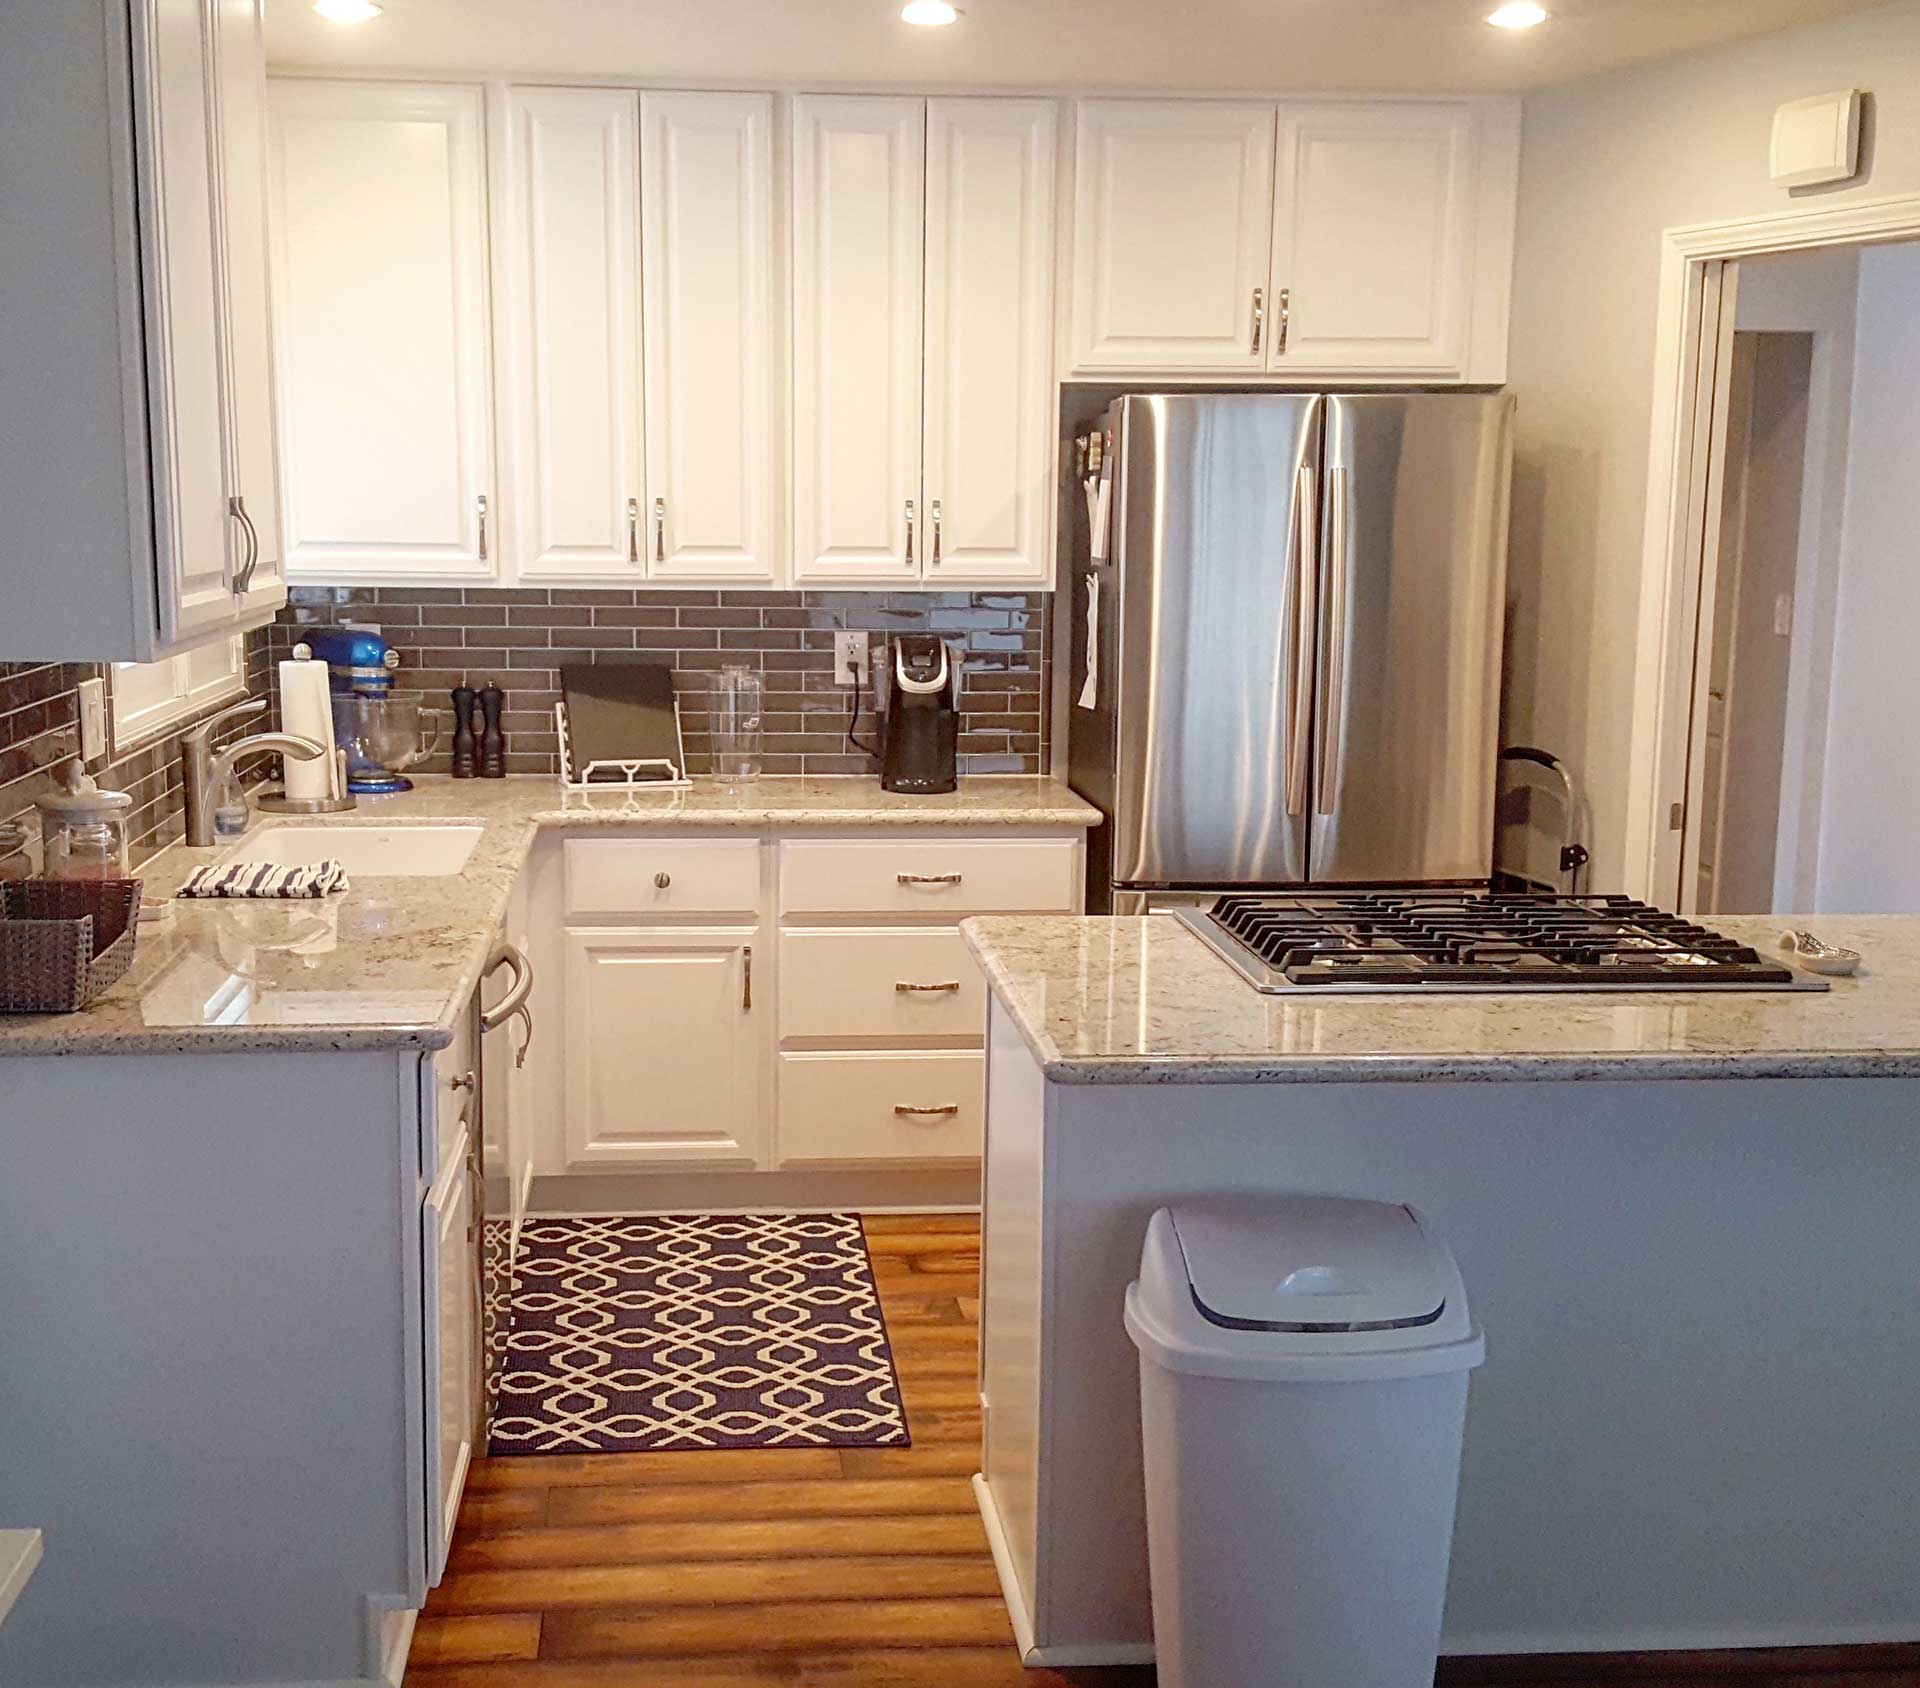 Remodel Kitchen With White Cabinets: Talk To A Pro About Kitchen Cabinets & Remodeling. Free